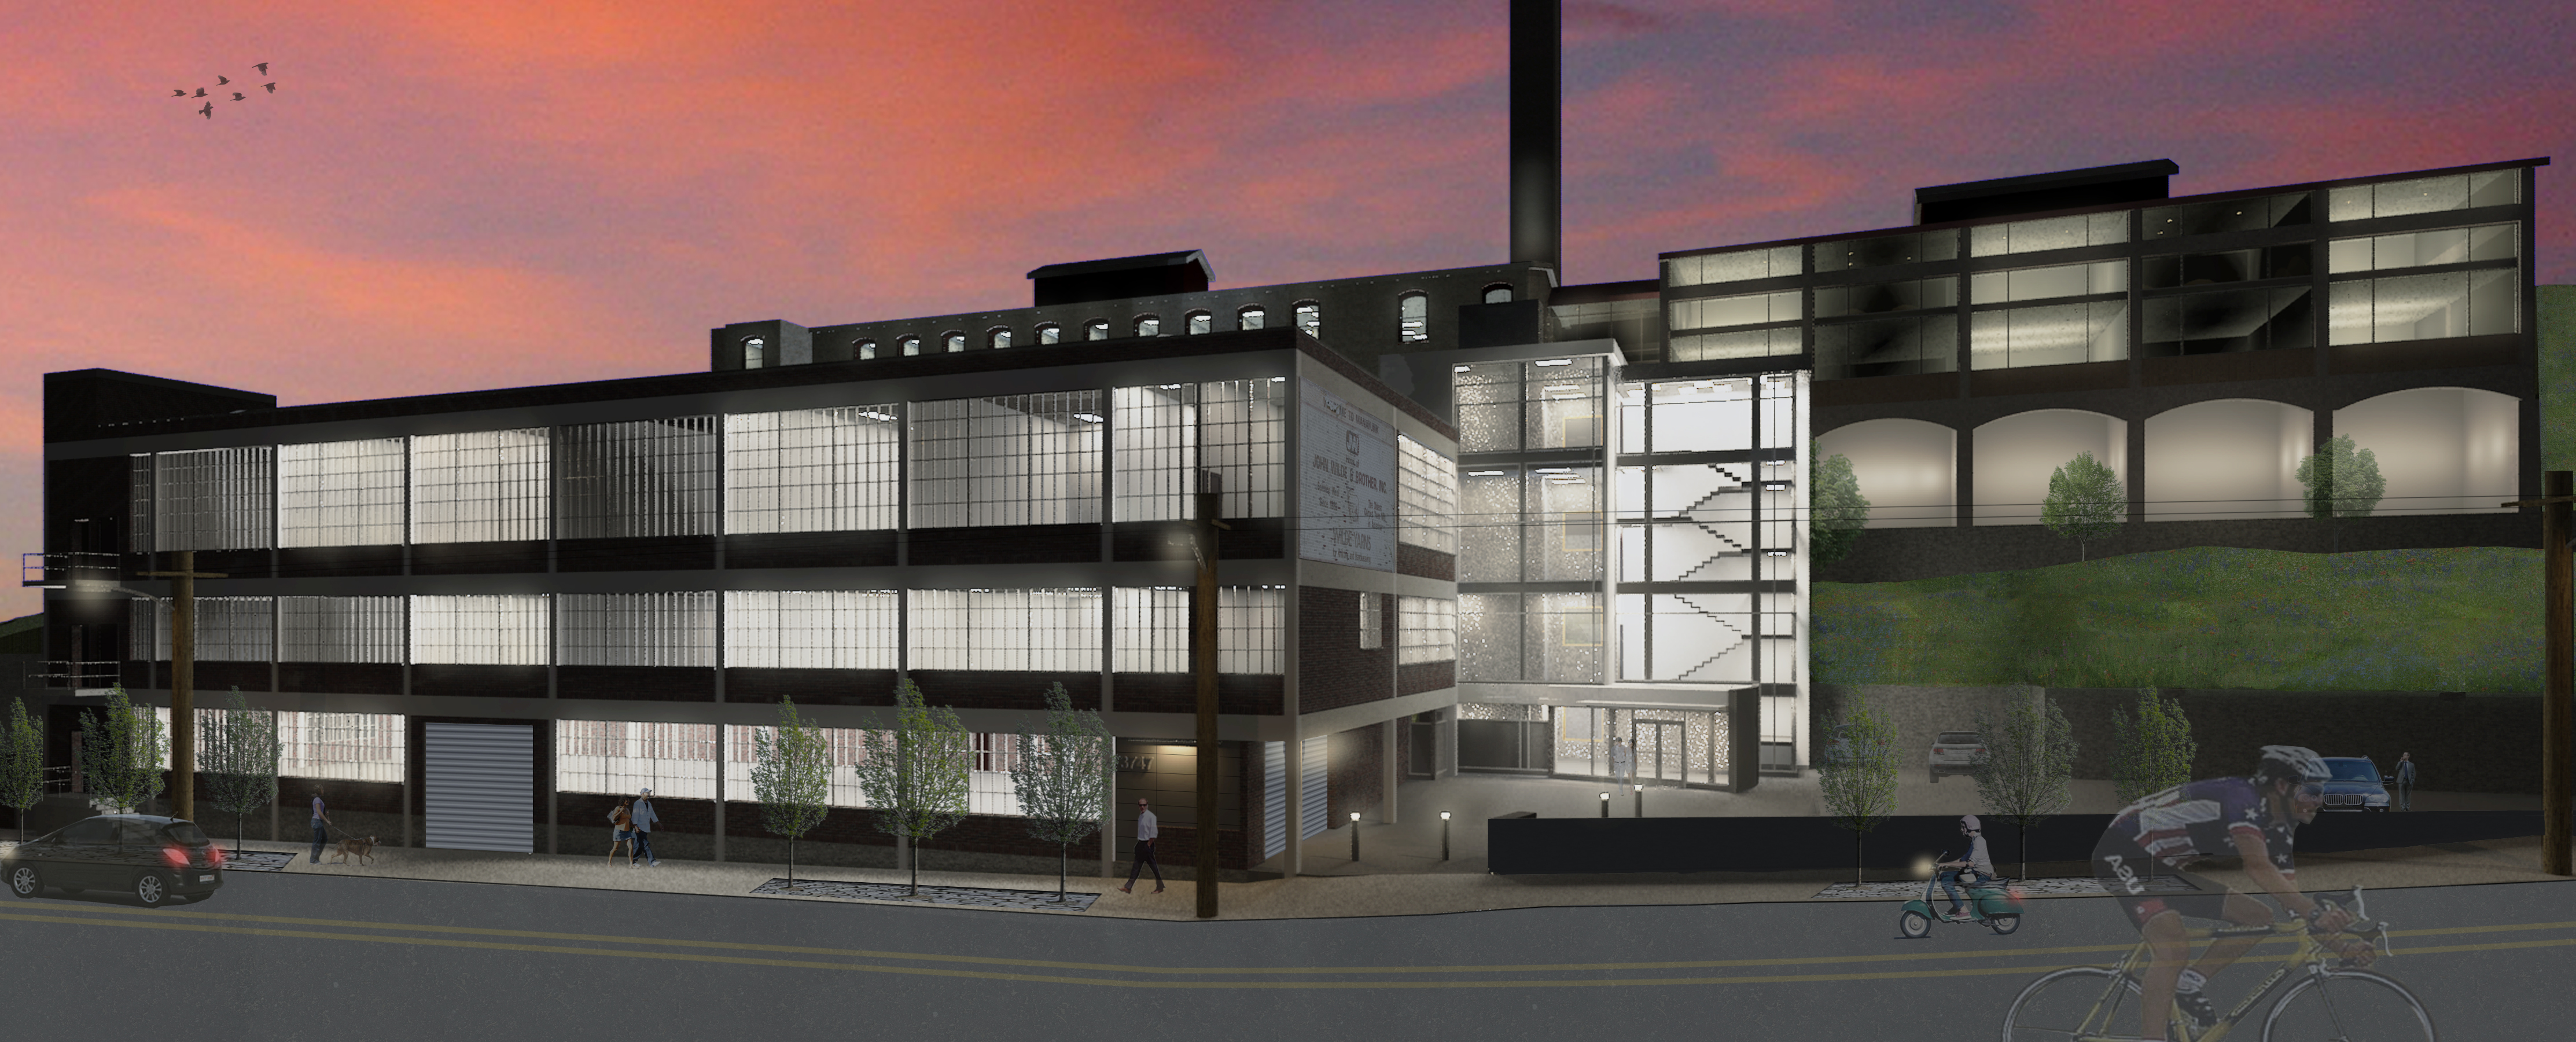 New Life Looming For Manayunk Yarn Mill